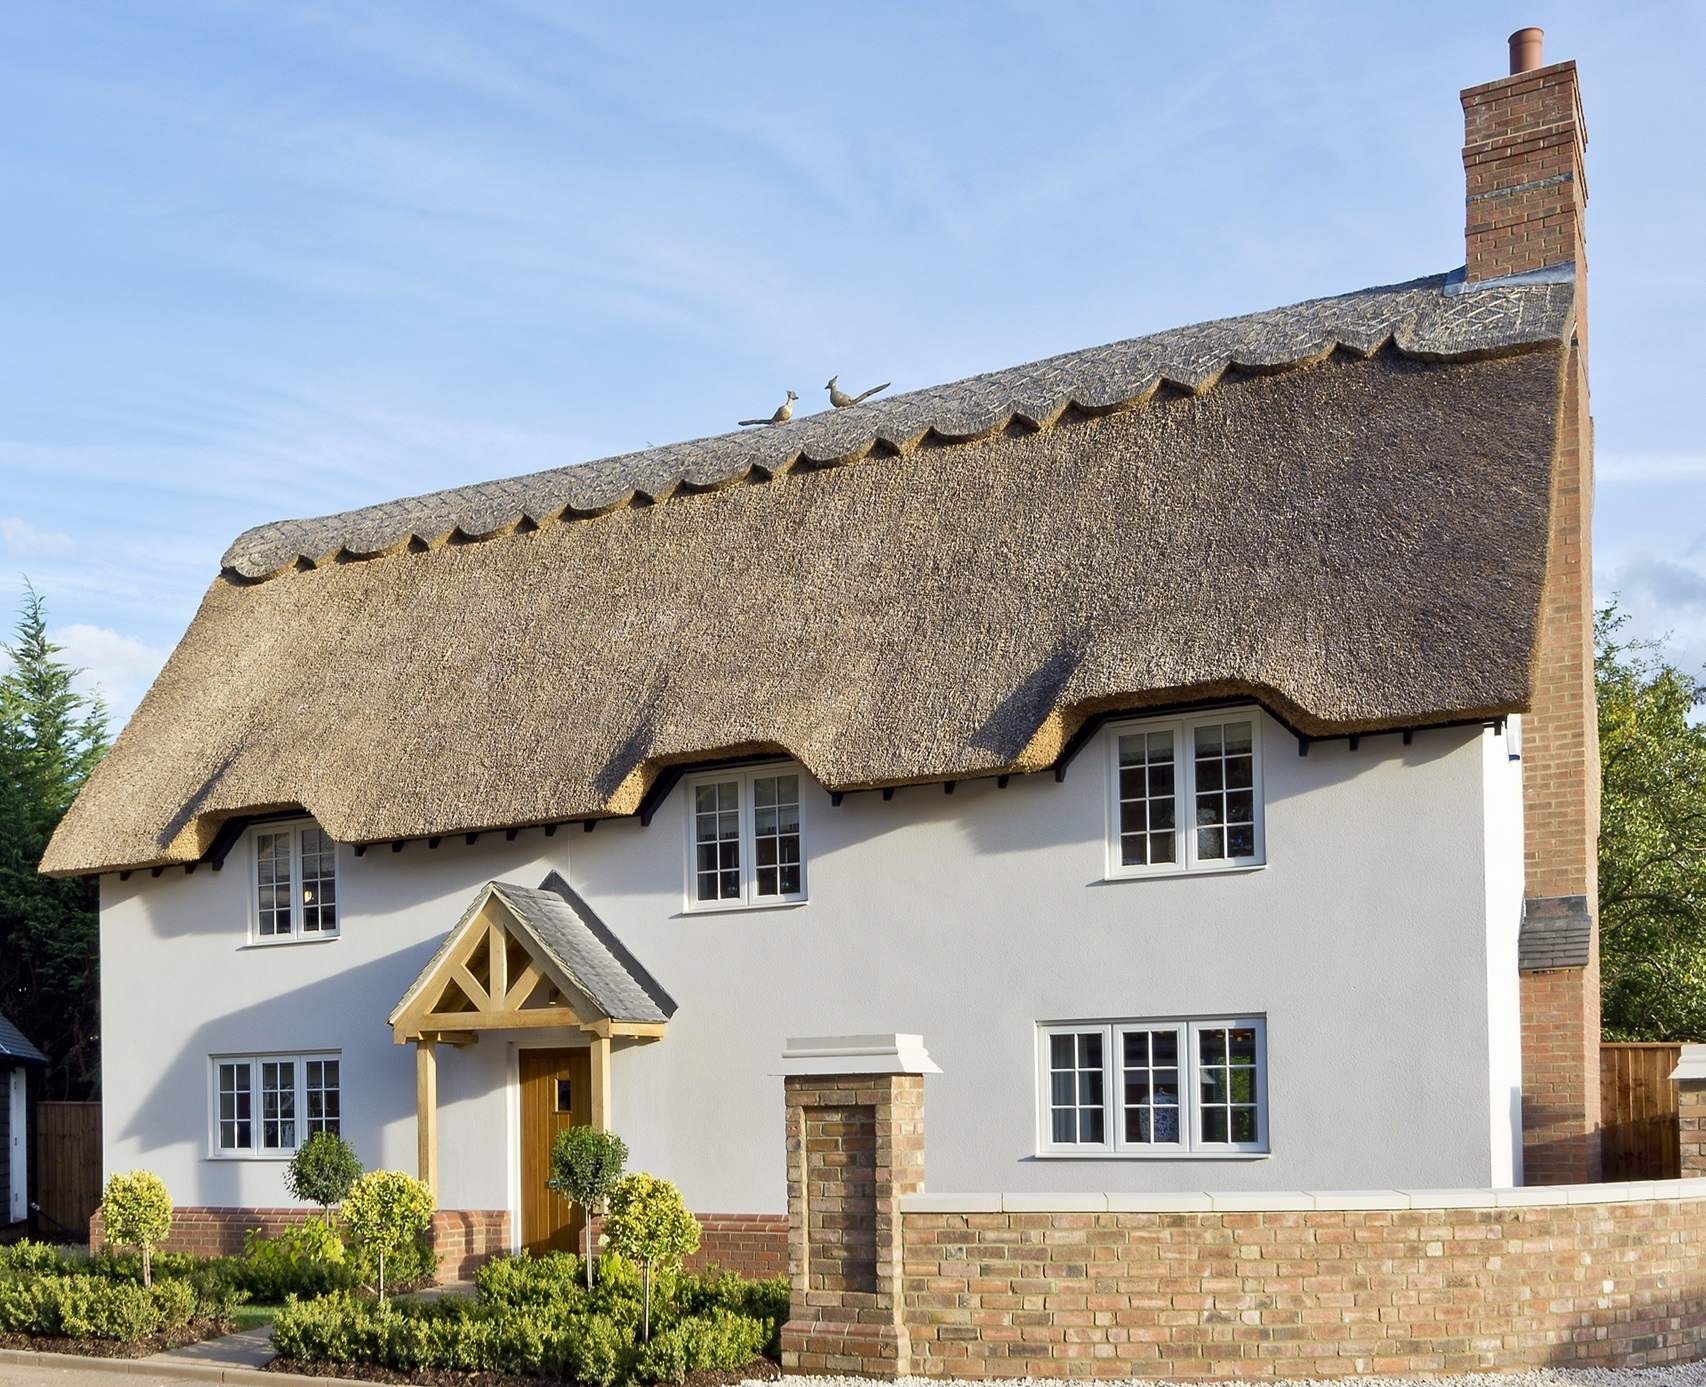 Repair My Thatch Roof Or Re Thatch It Heart Of England